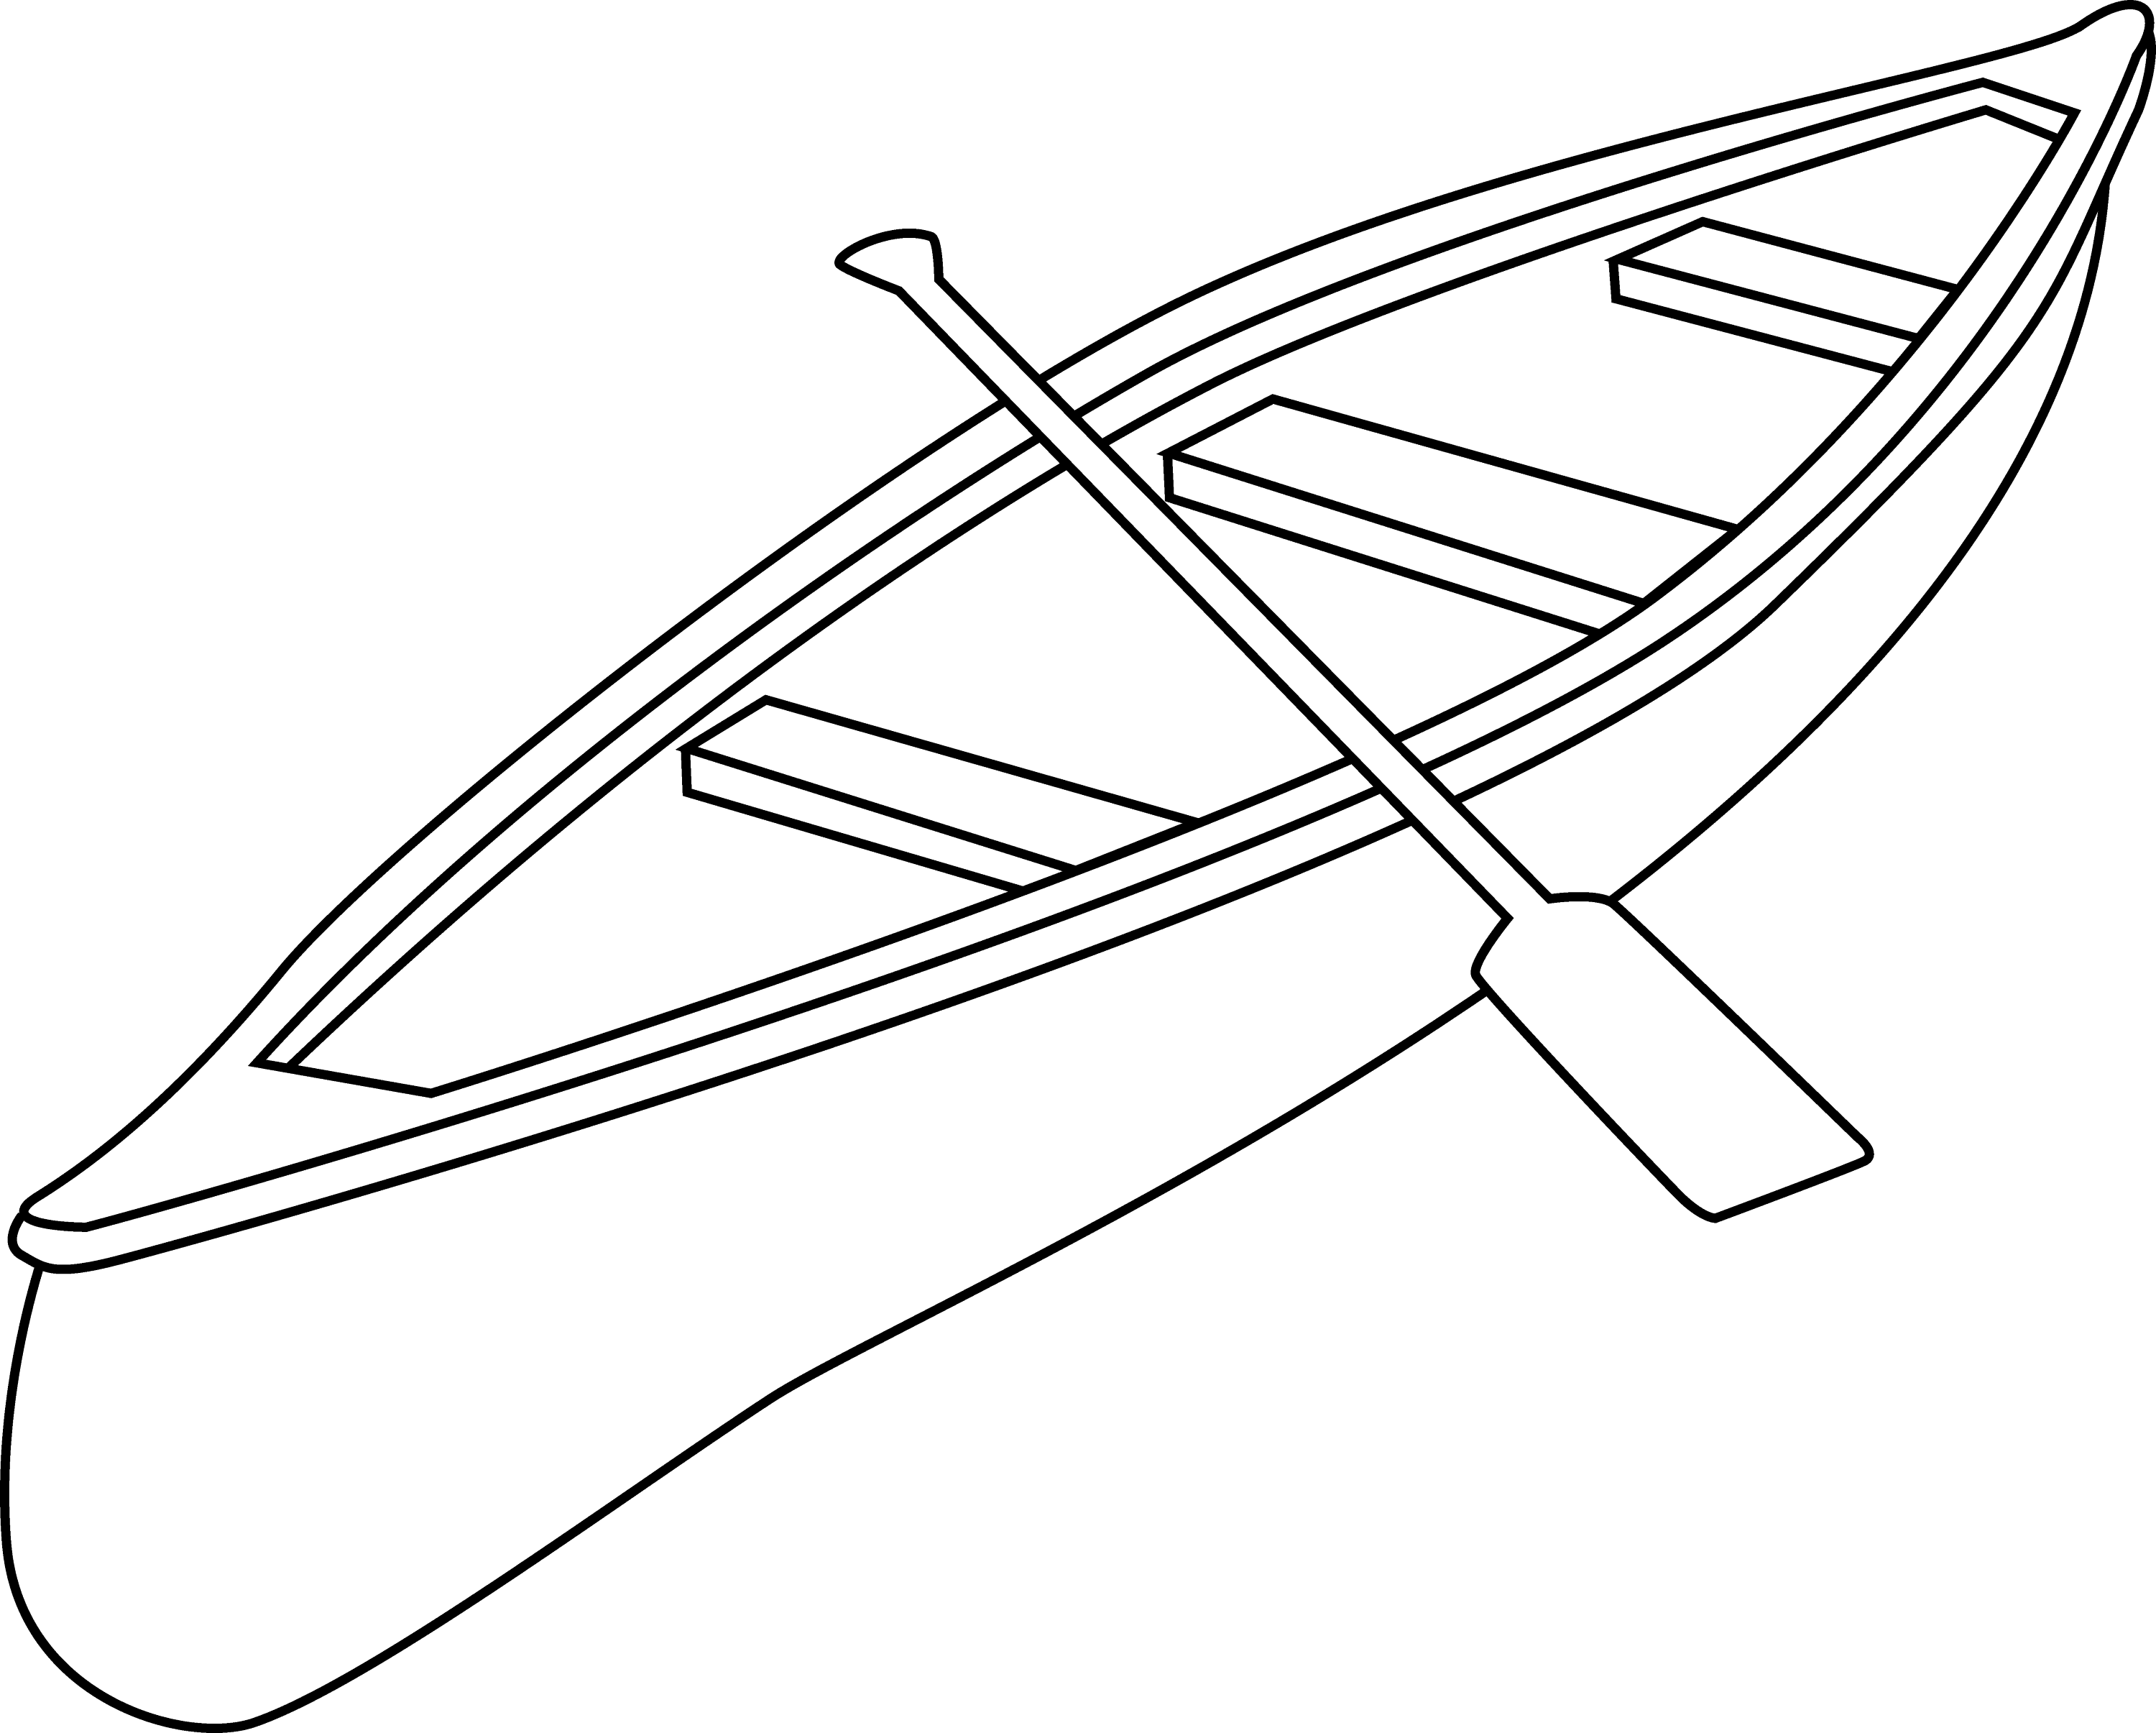 Line Art Boat : Canoe coloring page free clip art